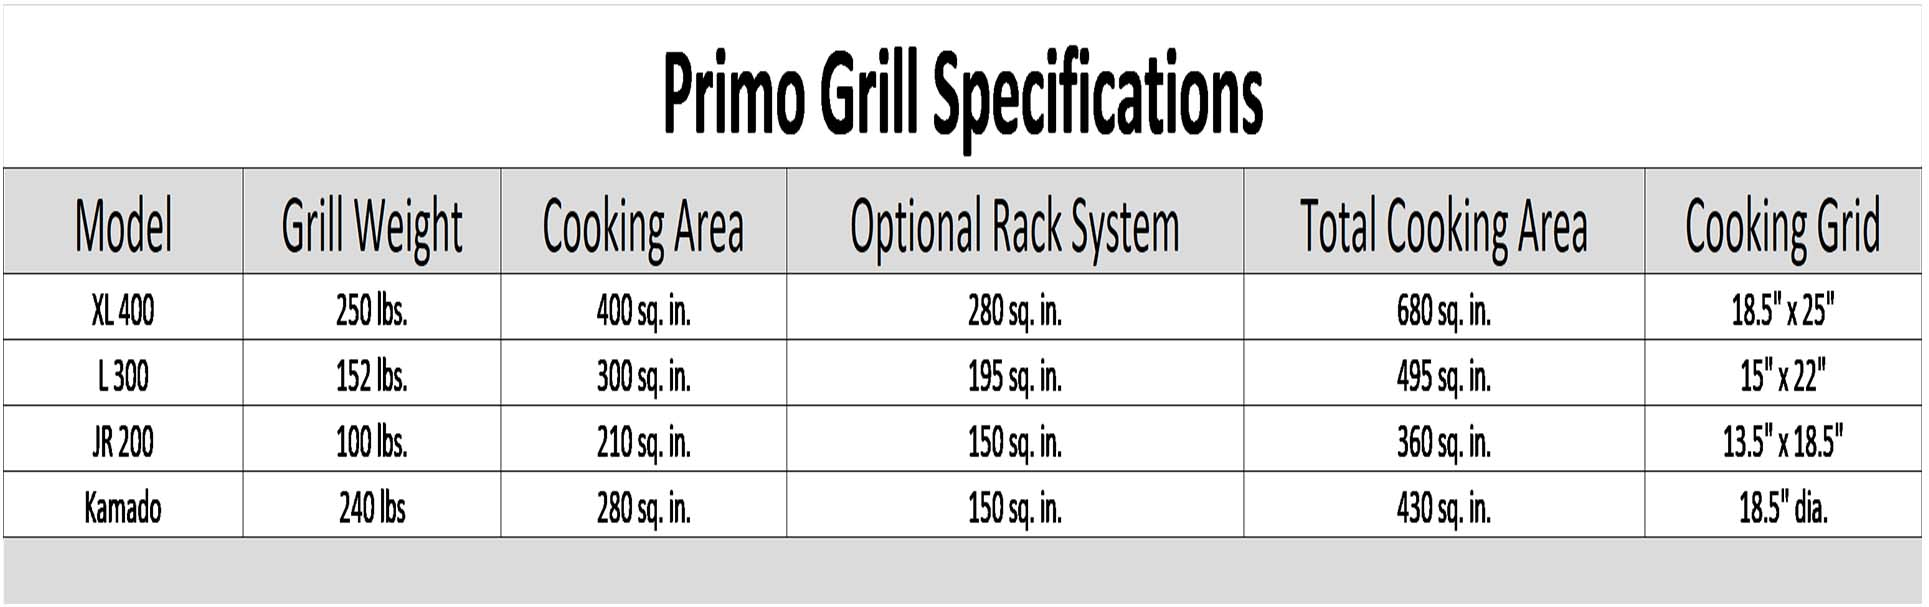 Primo Ceramic Grills Size Comparison